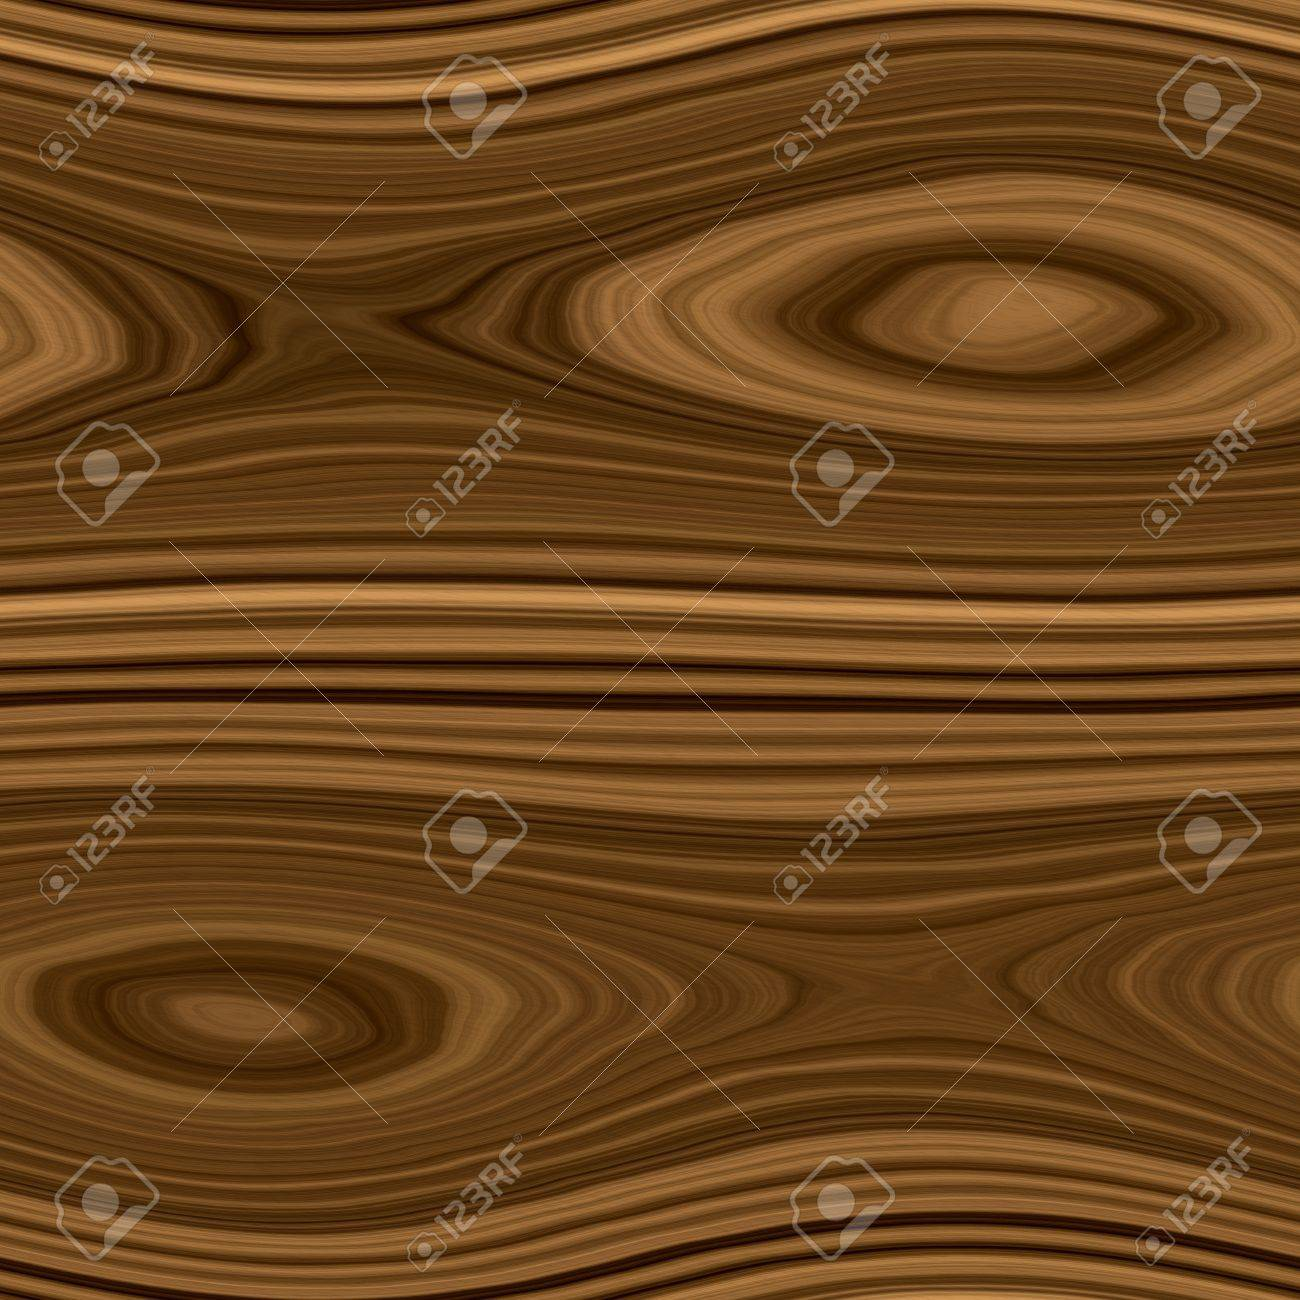 Wood Furniture Texture seamless wood texture stock photo, picture and royalty free image